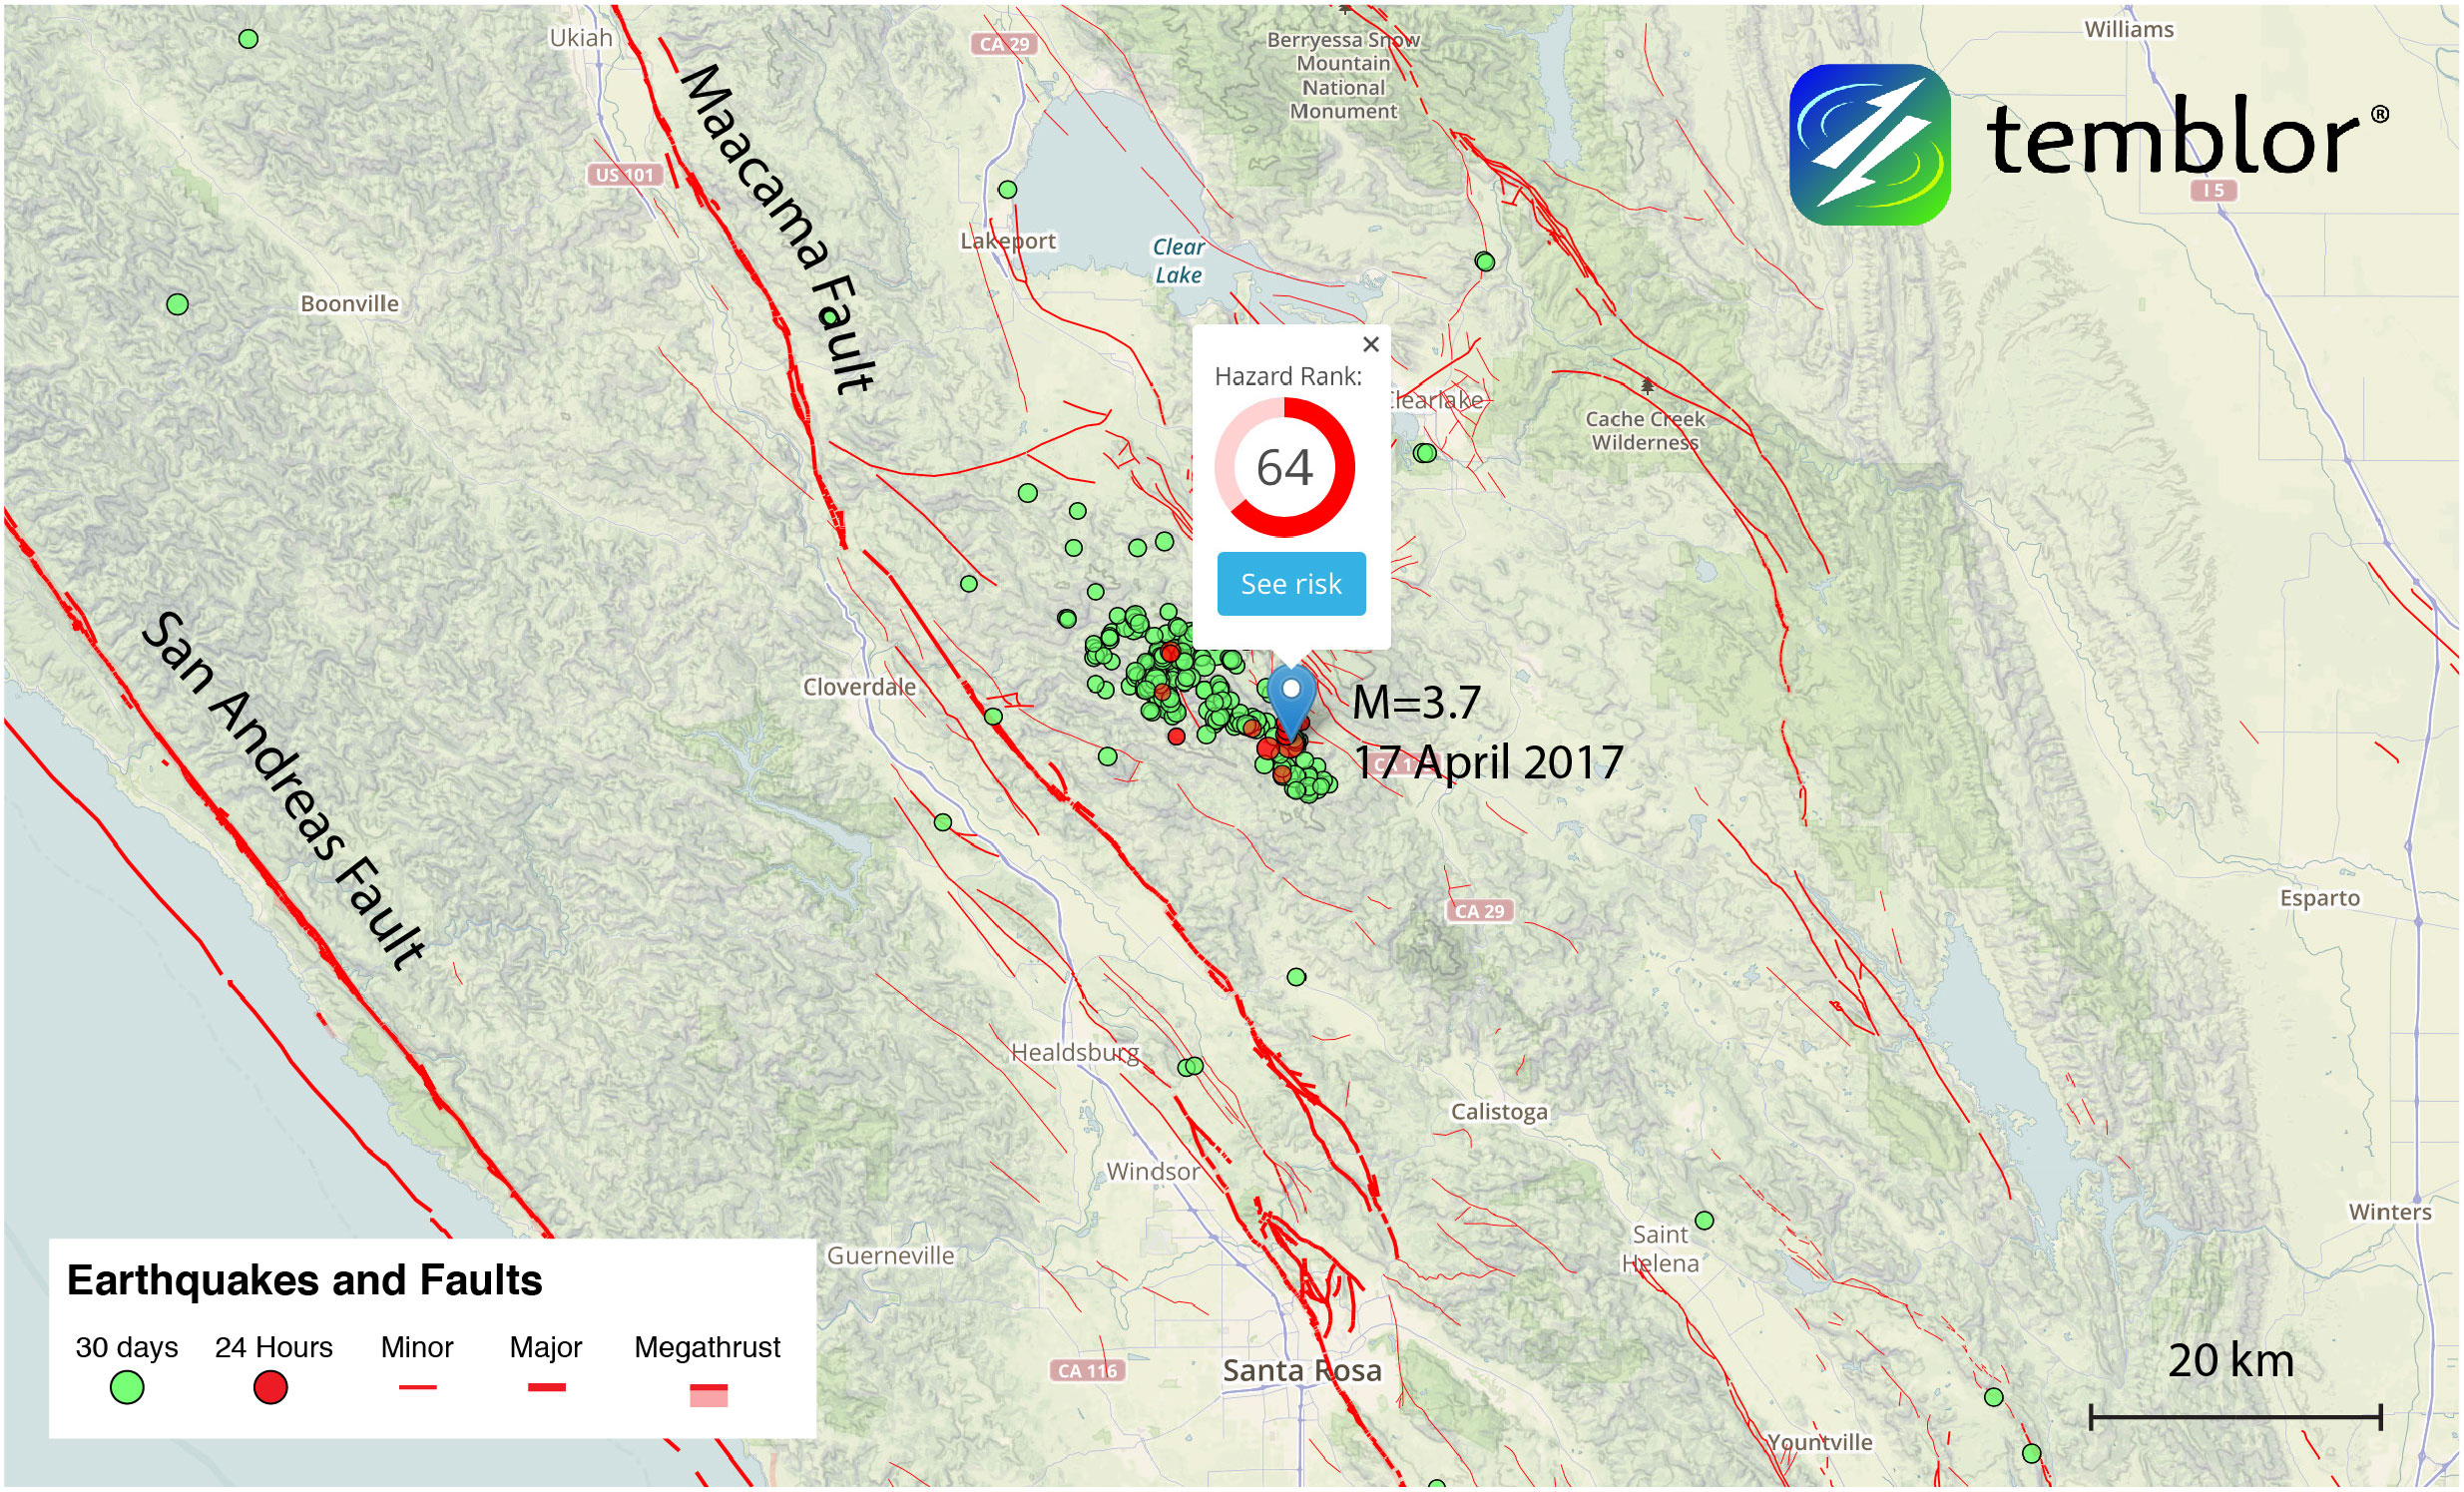 This Temblor map shows the location of yesterday's M=3.7 earthquake near Geysers, CA. While there are large faults in the area, the majority of earthquakes near Geysers are induced, and occur on small fractures beneath the geothermal field.